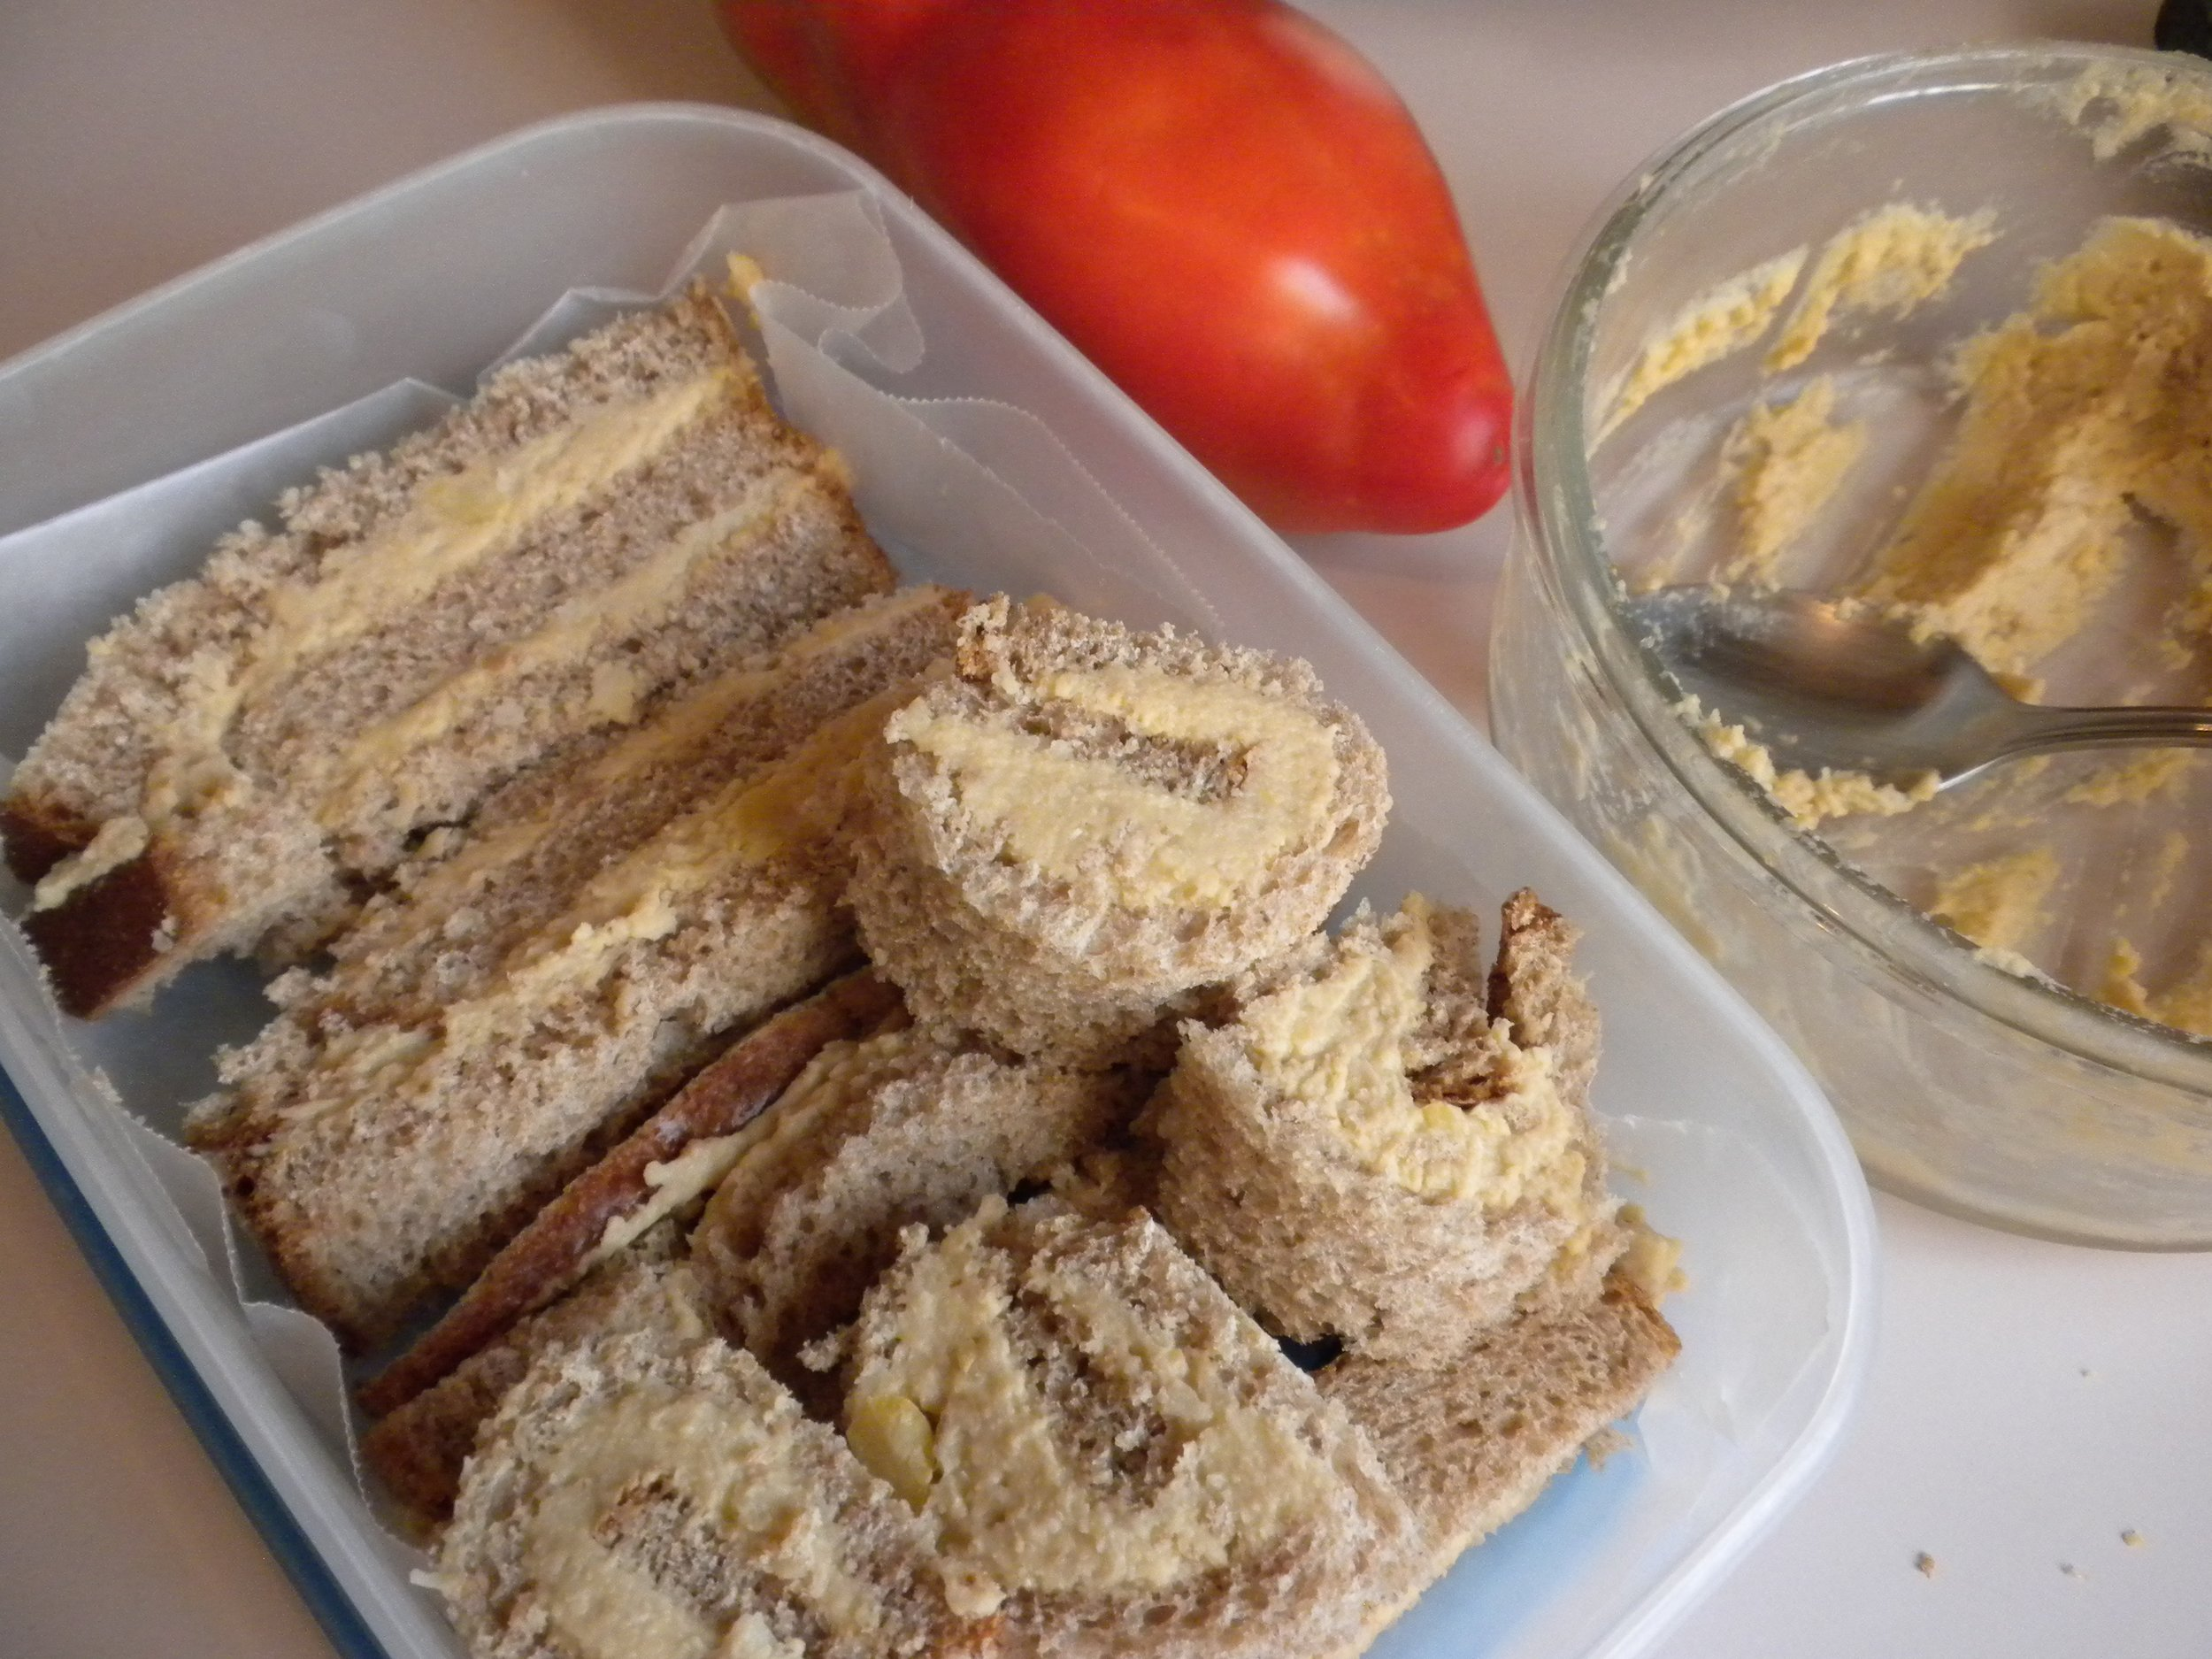 Hummus bars and pinwheel roll ups.   Snack Idea: For any time of the day! Try a Hummus or peanut butter sandwich!  Make a sandwich and cut into 4 - 1-inch wide bars or slice a piece of bread into 2 thin slices. Spread hummus or peanut butter on each half and roll each half and cut each into pinwheels like shape. Store covered in refrigerator.